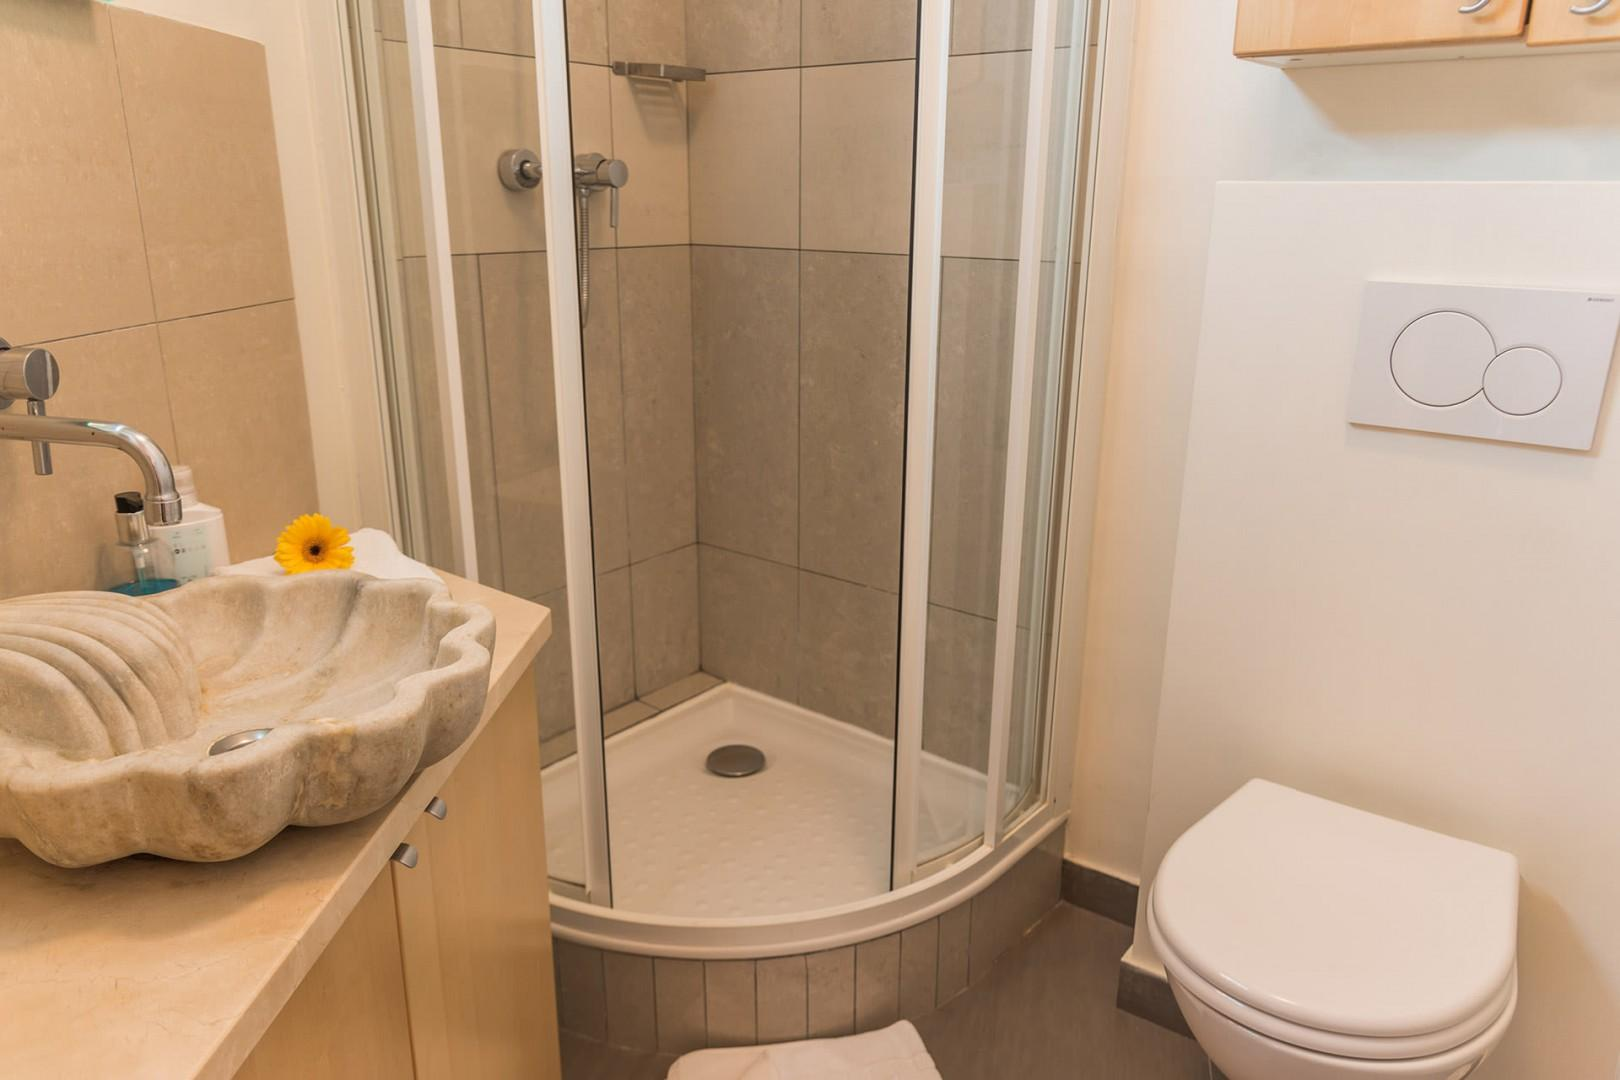 The modern bathroom features a shower, toilet and sink.